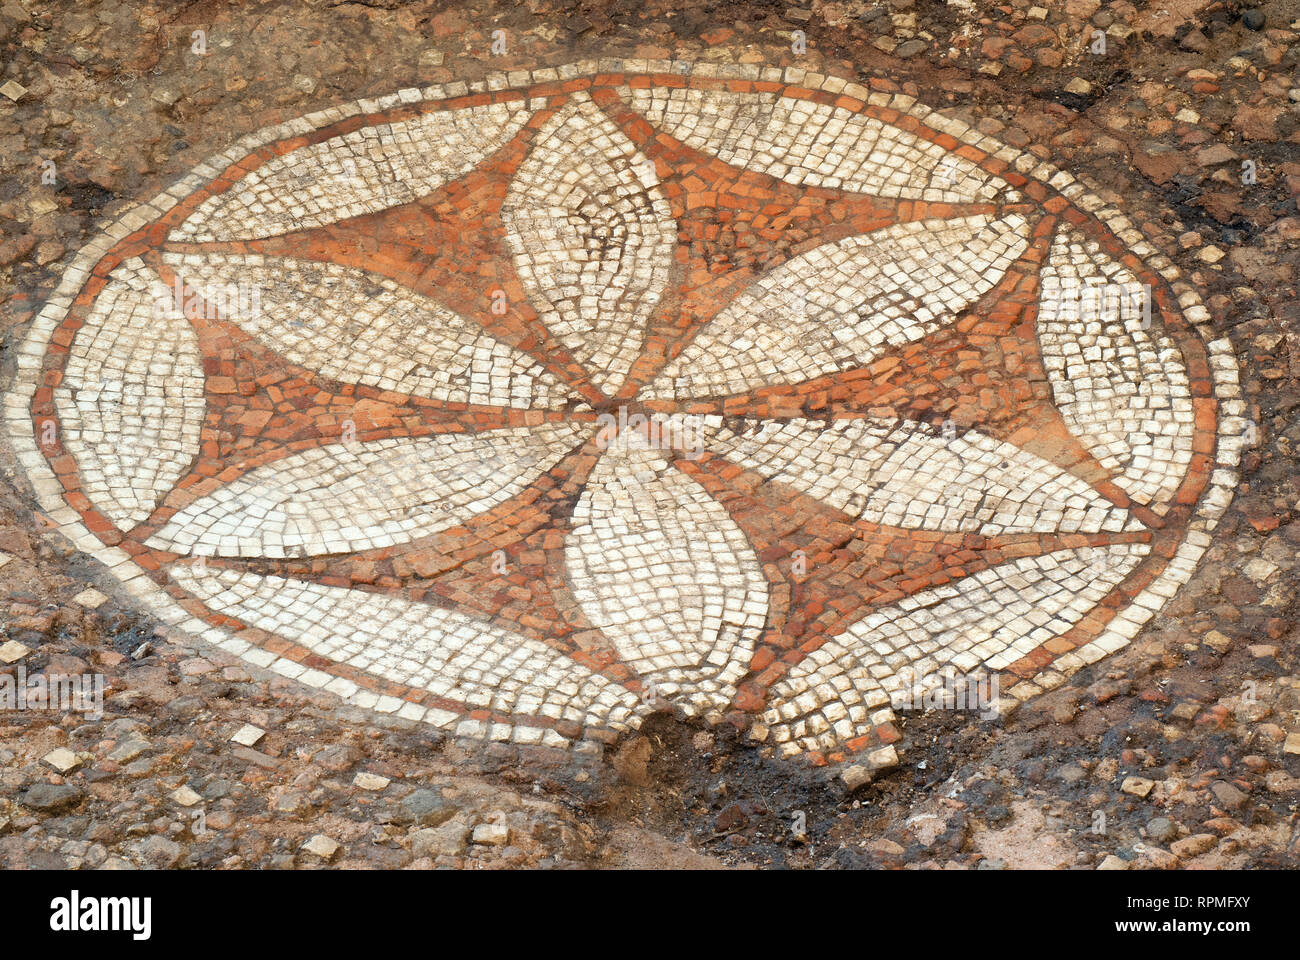 "Ancient Roman pavement mosaic at Archaeological Museum Fregellae ""AMEDEO MAIURI"", Ceprano, Lazio, Italy Stock Photo"